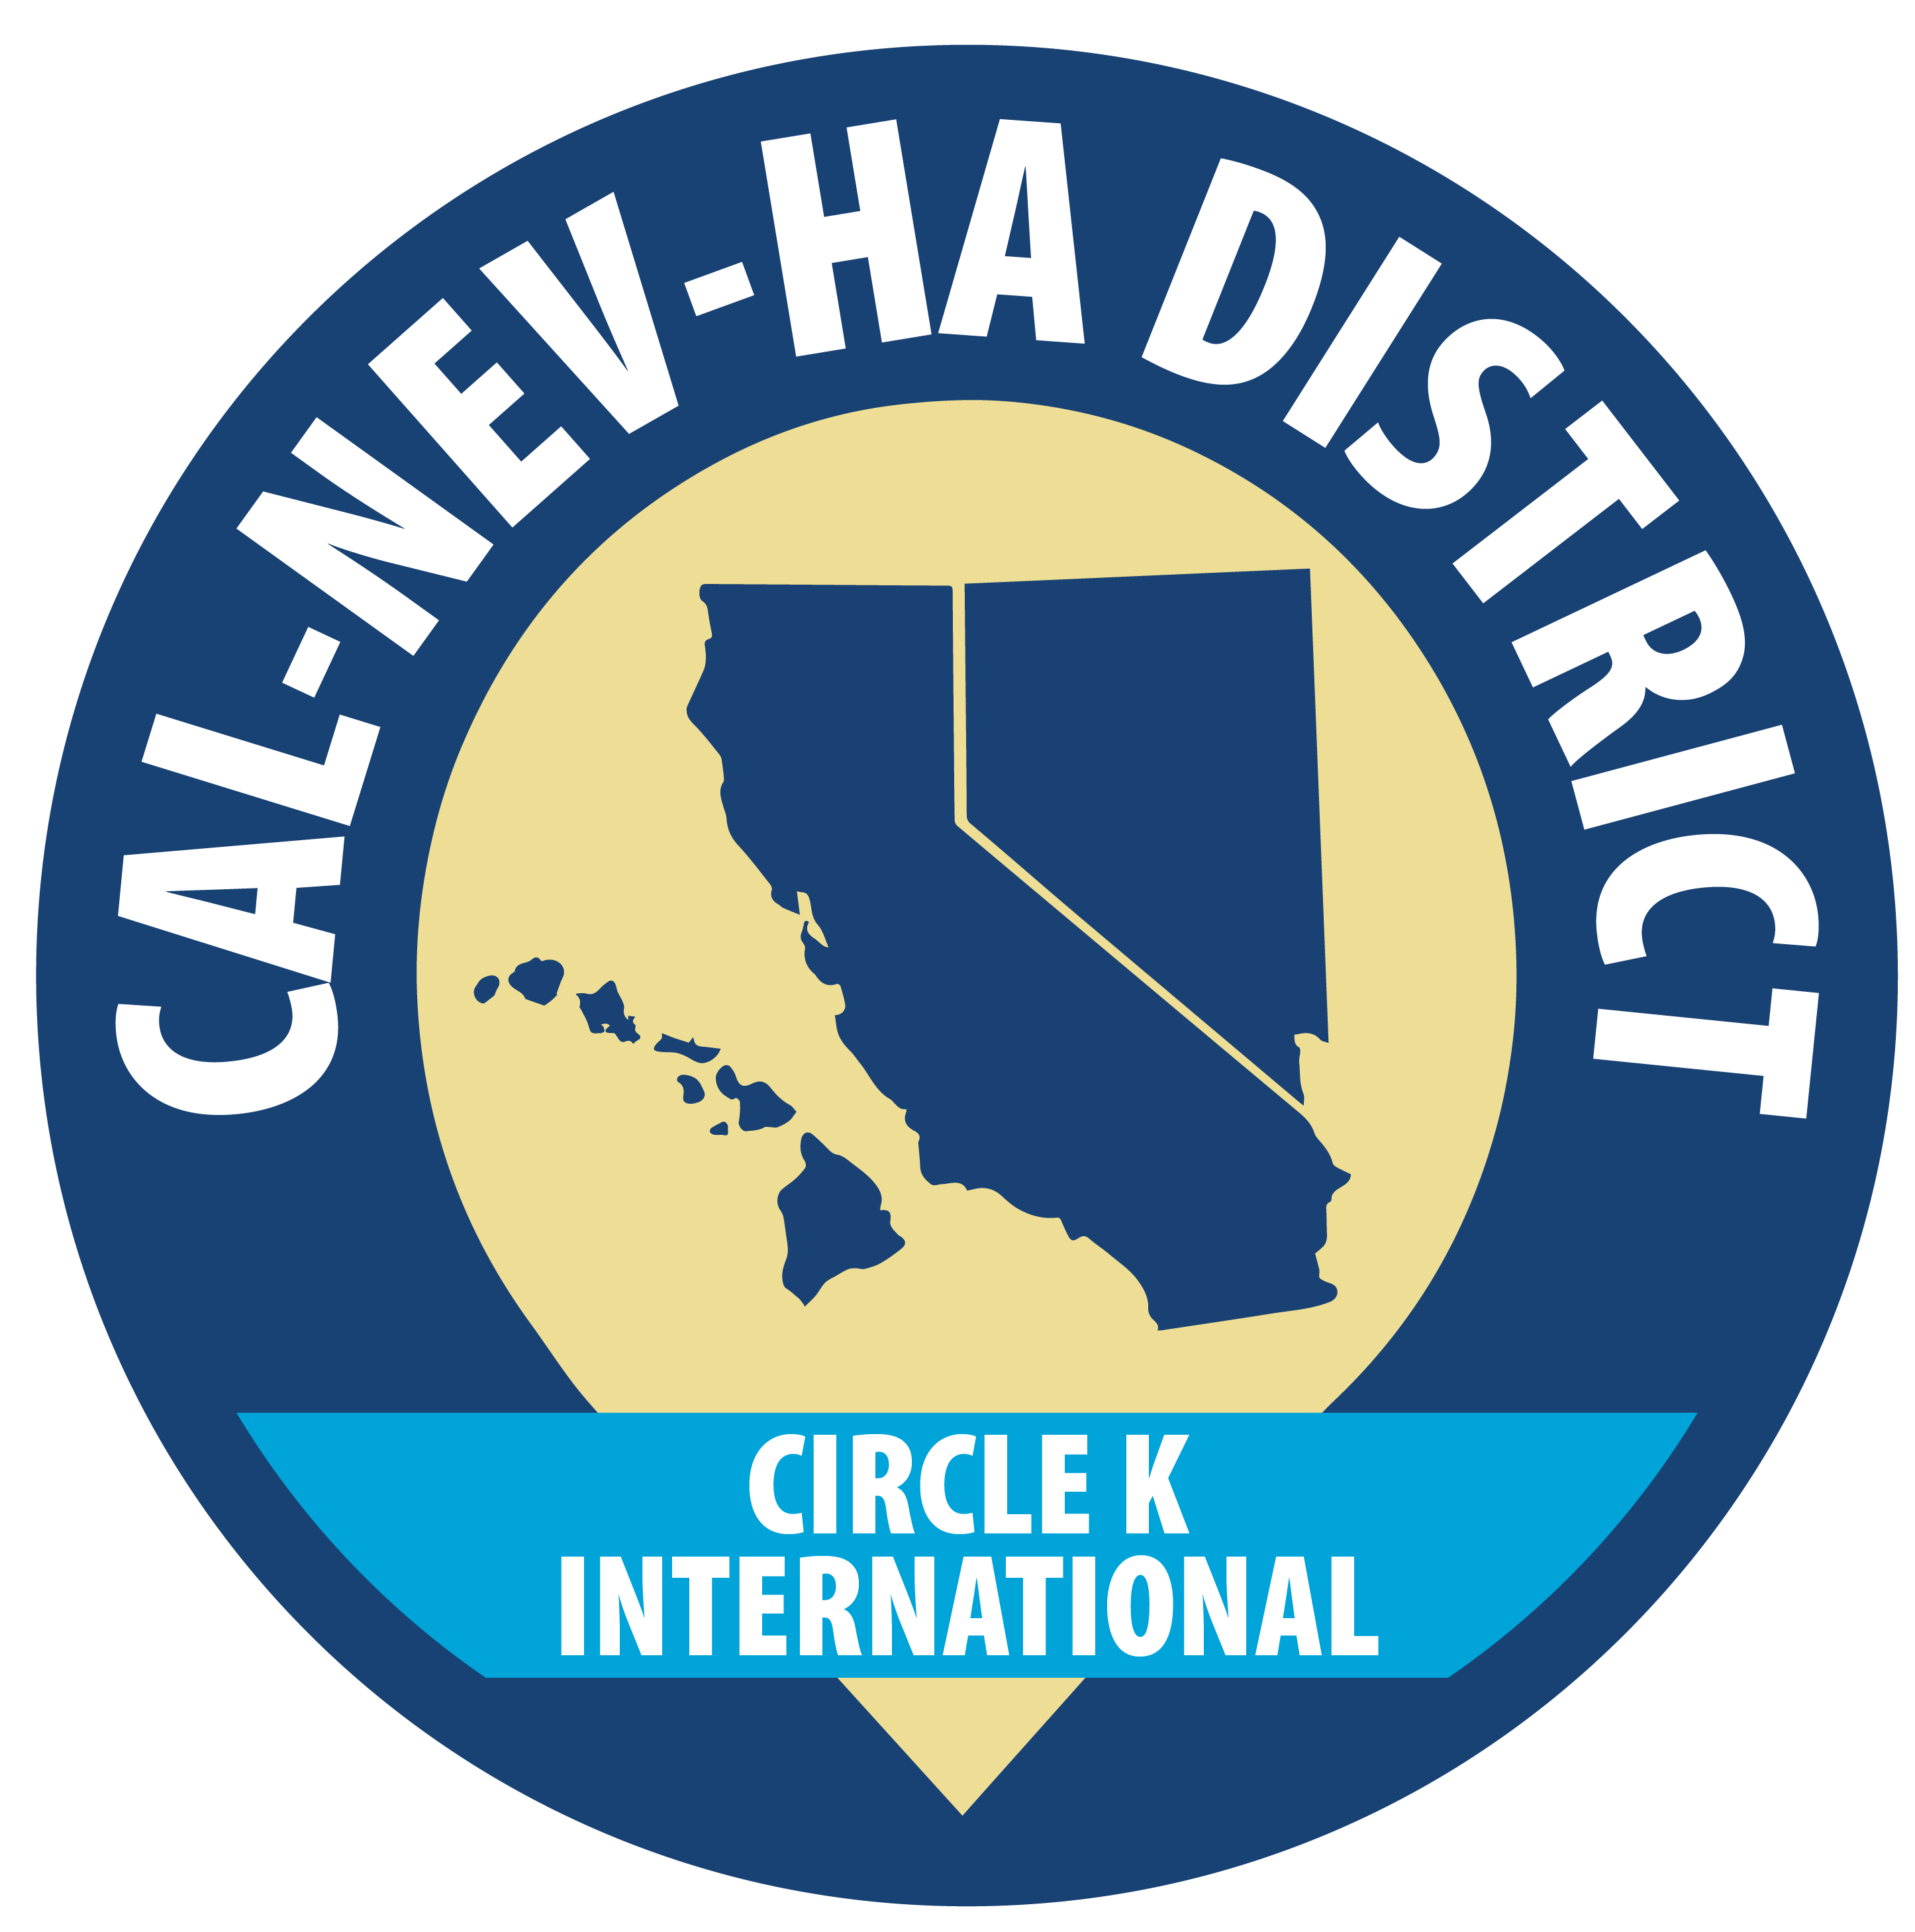 California-Nevada-Hawaii District of Circle K International